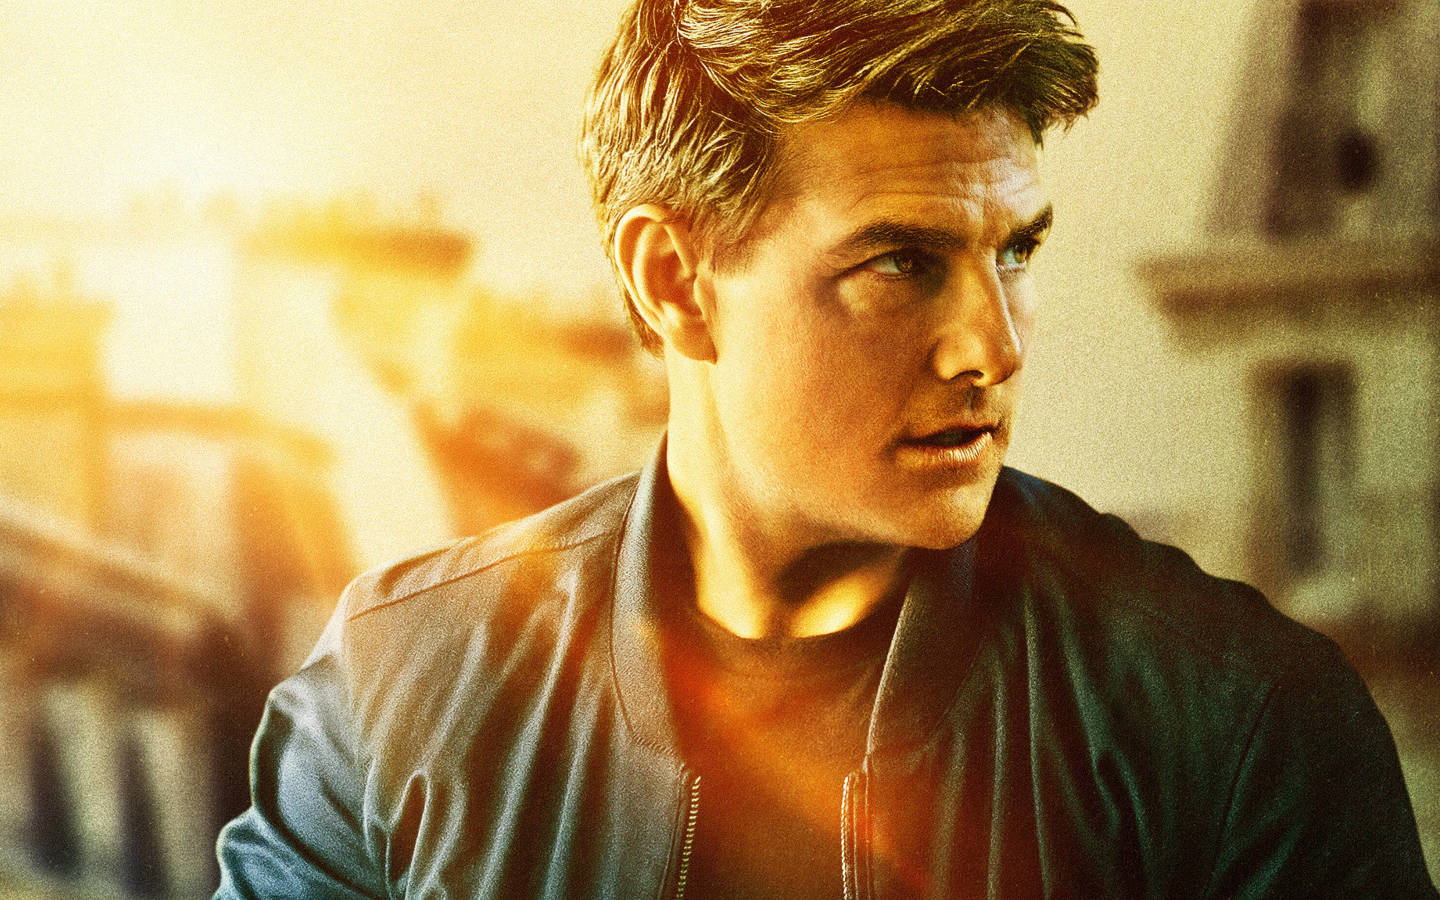 1440x900 Tom Cruise From Mission Impossible 6 1440x900